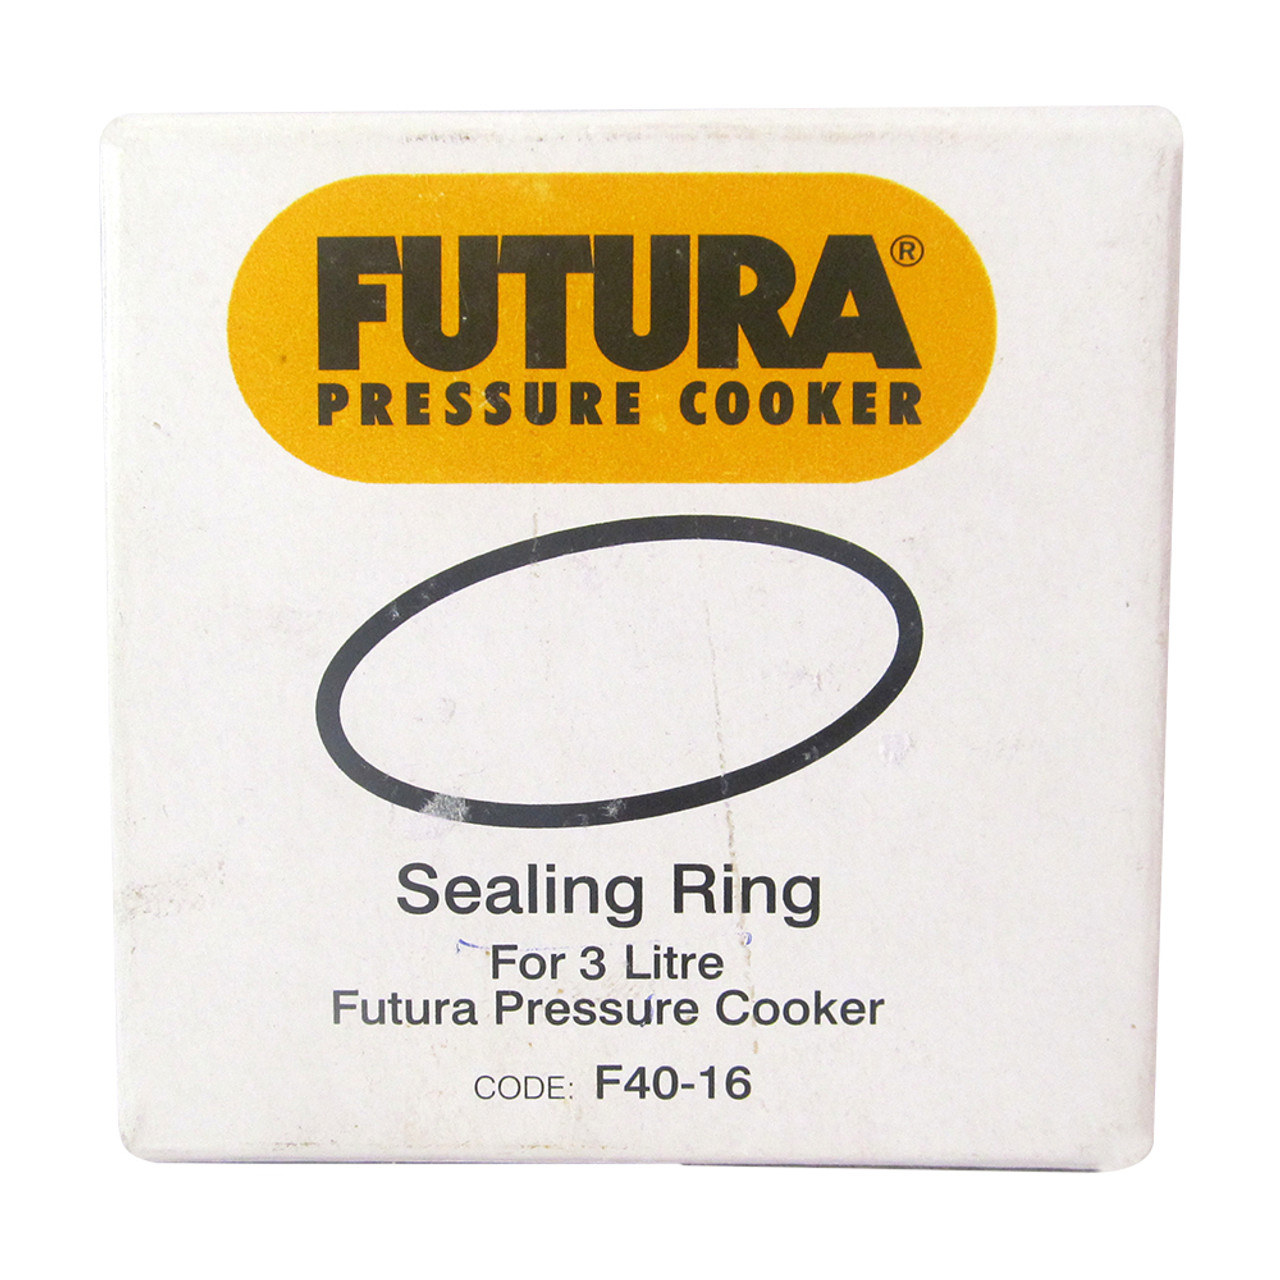 Futura Sealing Ring For 3 Ltr Pressure Cooker F40-16 Set Of 1